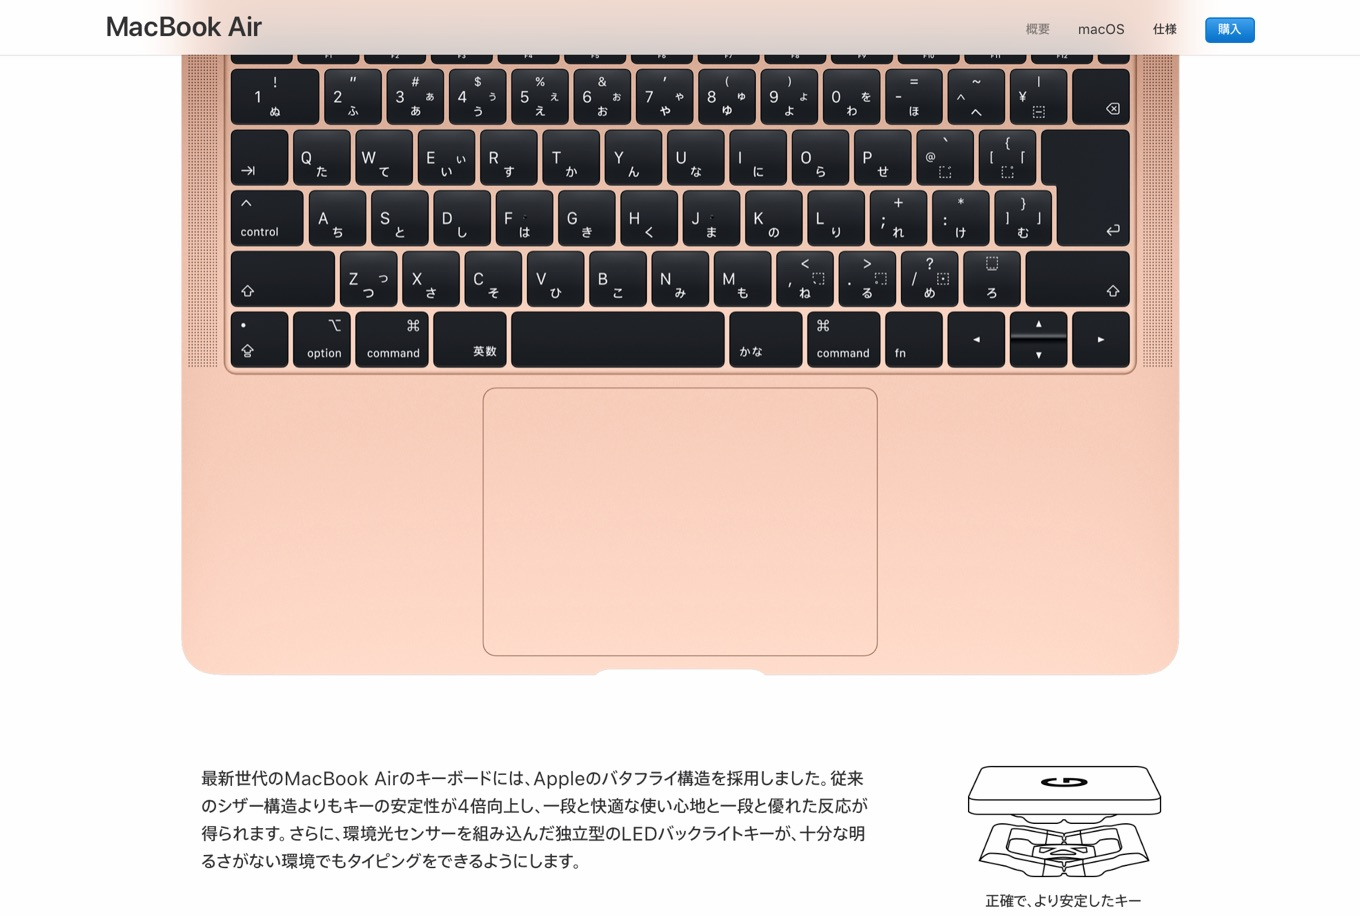 MacBook Air (Retina, 13inch, 2018)のキーボード